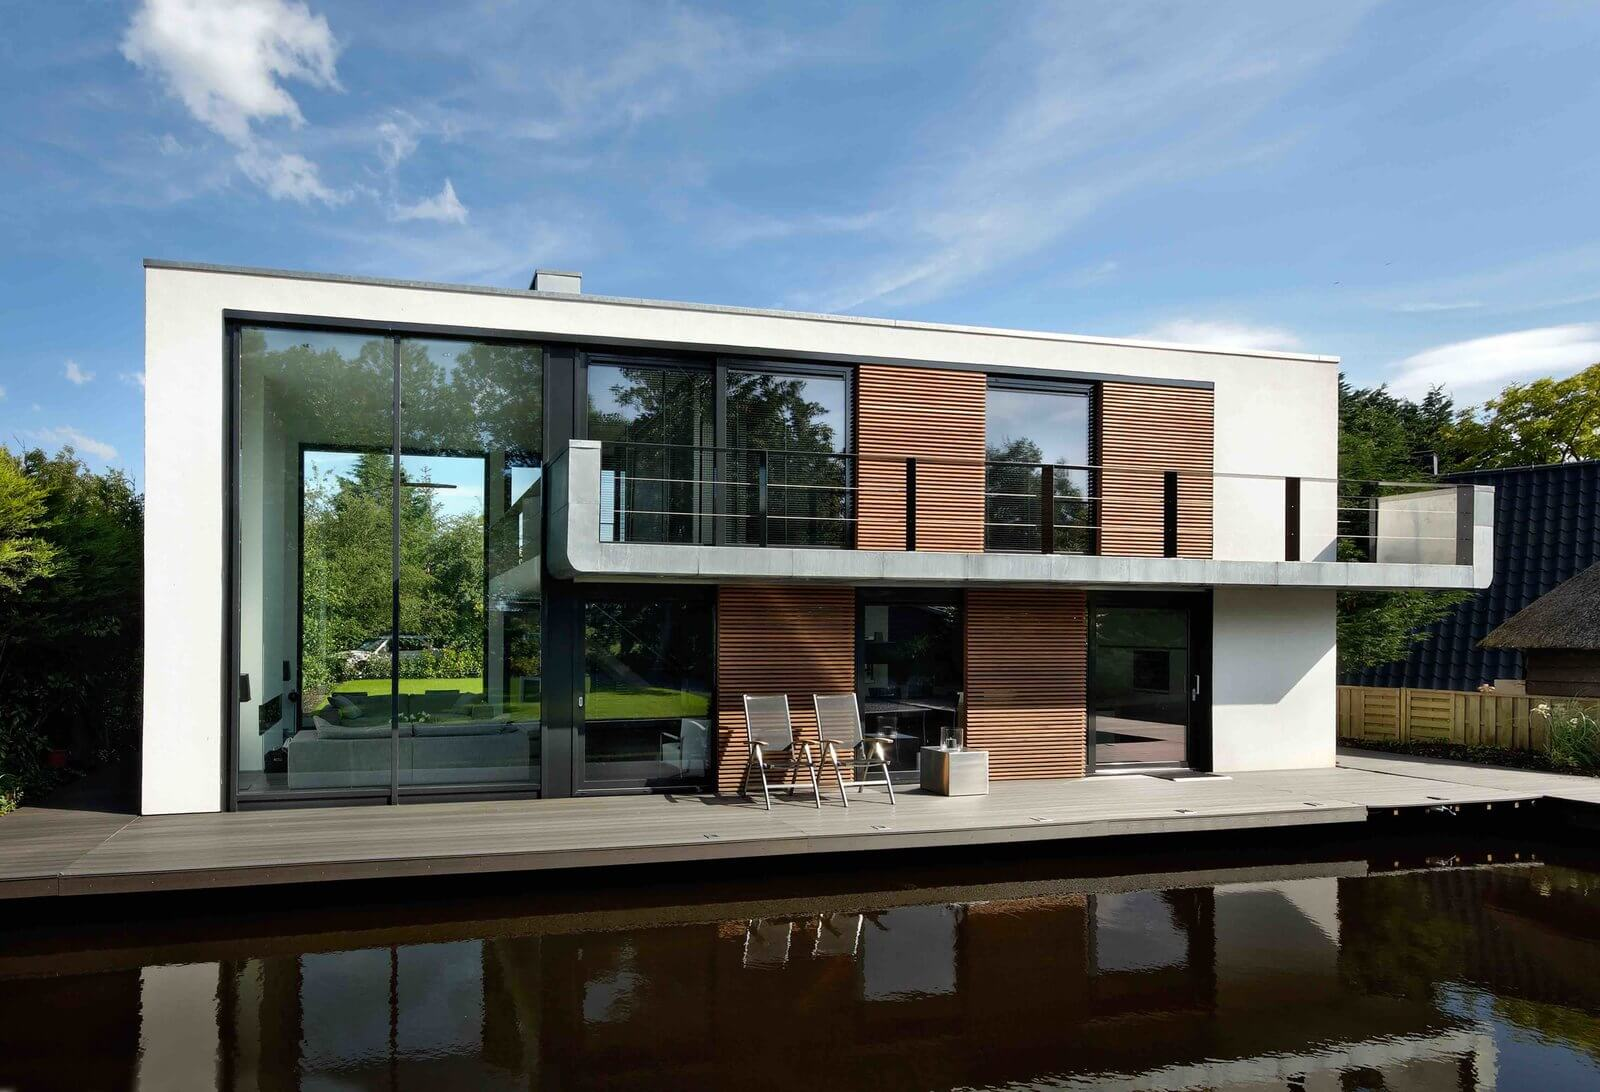 French Company Farea Manufactures Floating Homes That Are Certified As  Boats. This Is Important In France, As It Means The Houses Are Allowed In  Lakes, ...